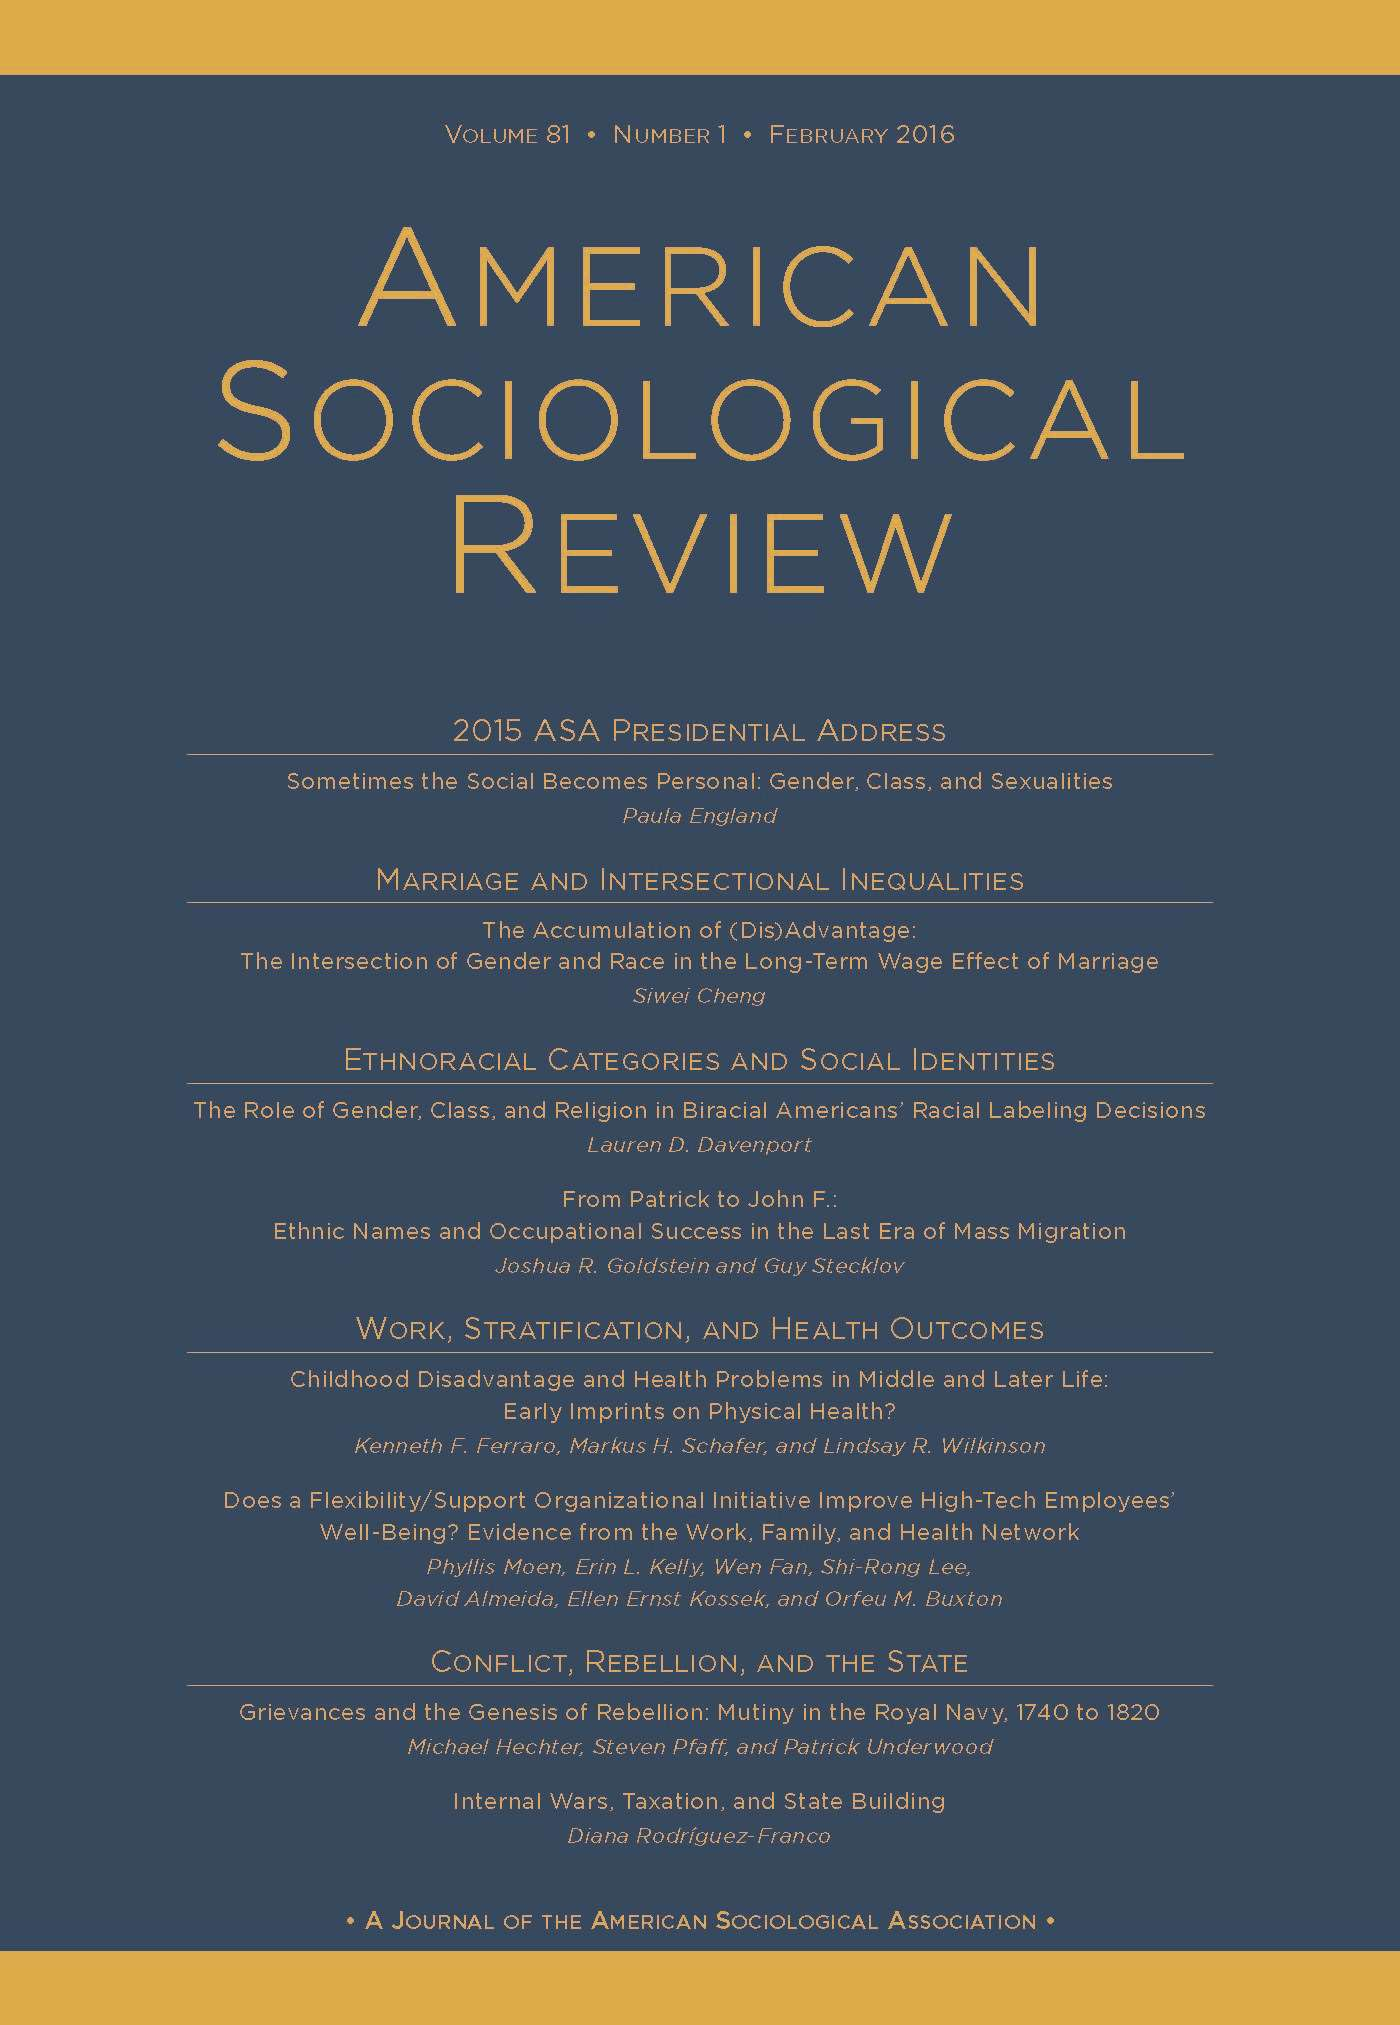 Cover of the February 2016 issue of the American Sociological Review. (Blue and gold.)